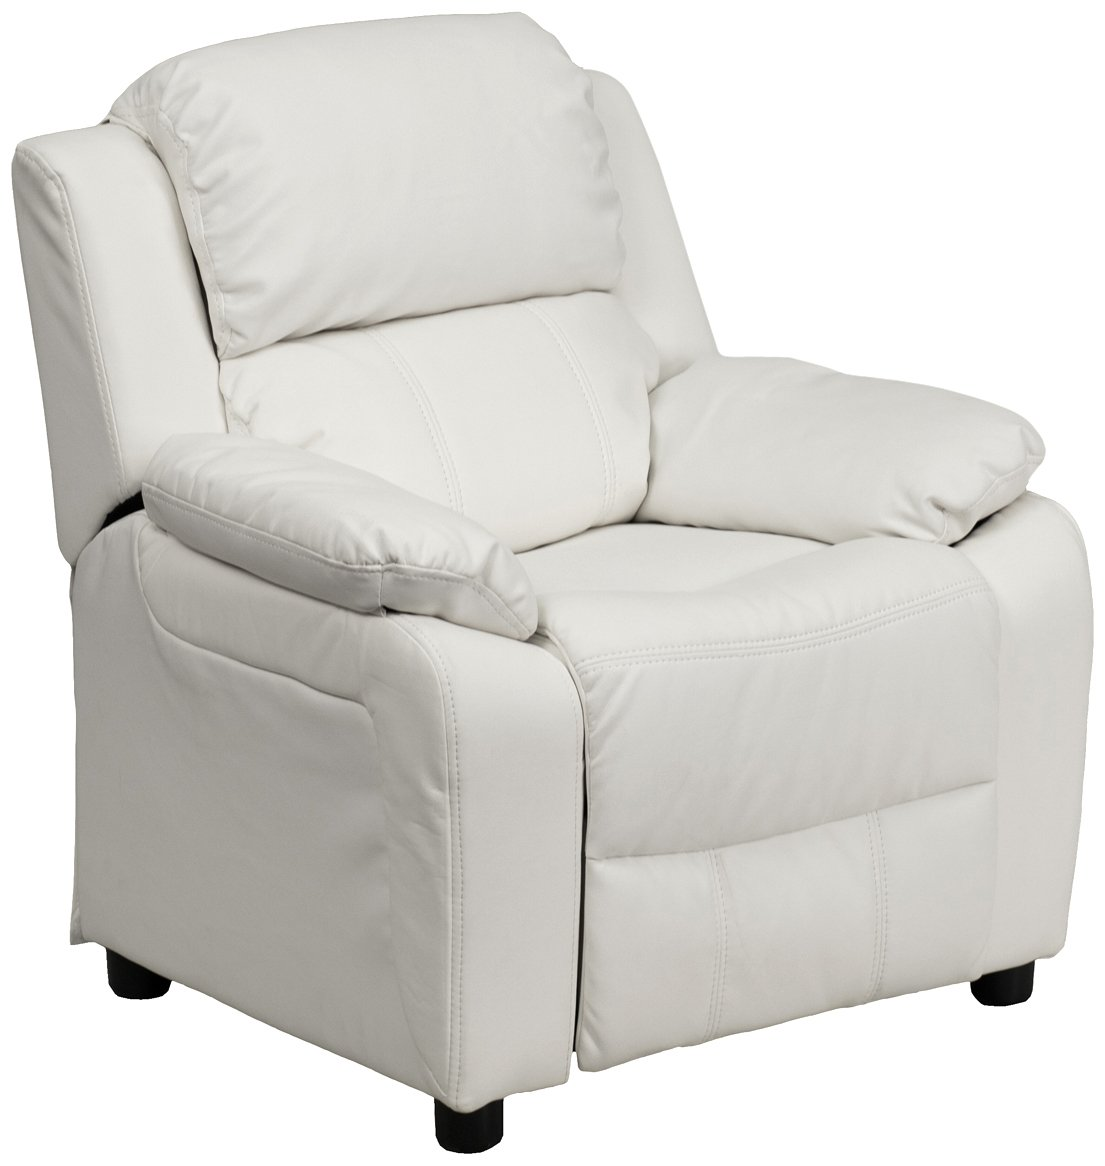 Offex OF-BT-7985-KID-WHITE-GG Deluxe Heavily Padded Contemporary White Vinyl Kids Recliner with Storage Arms